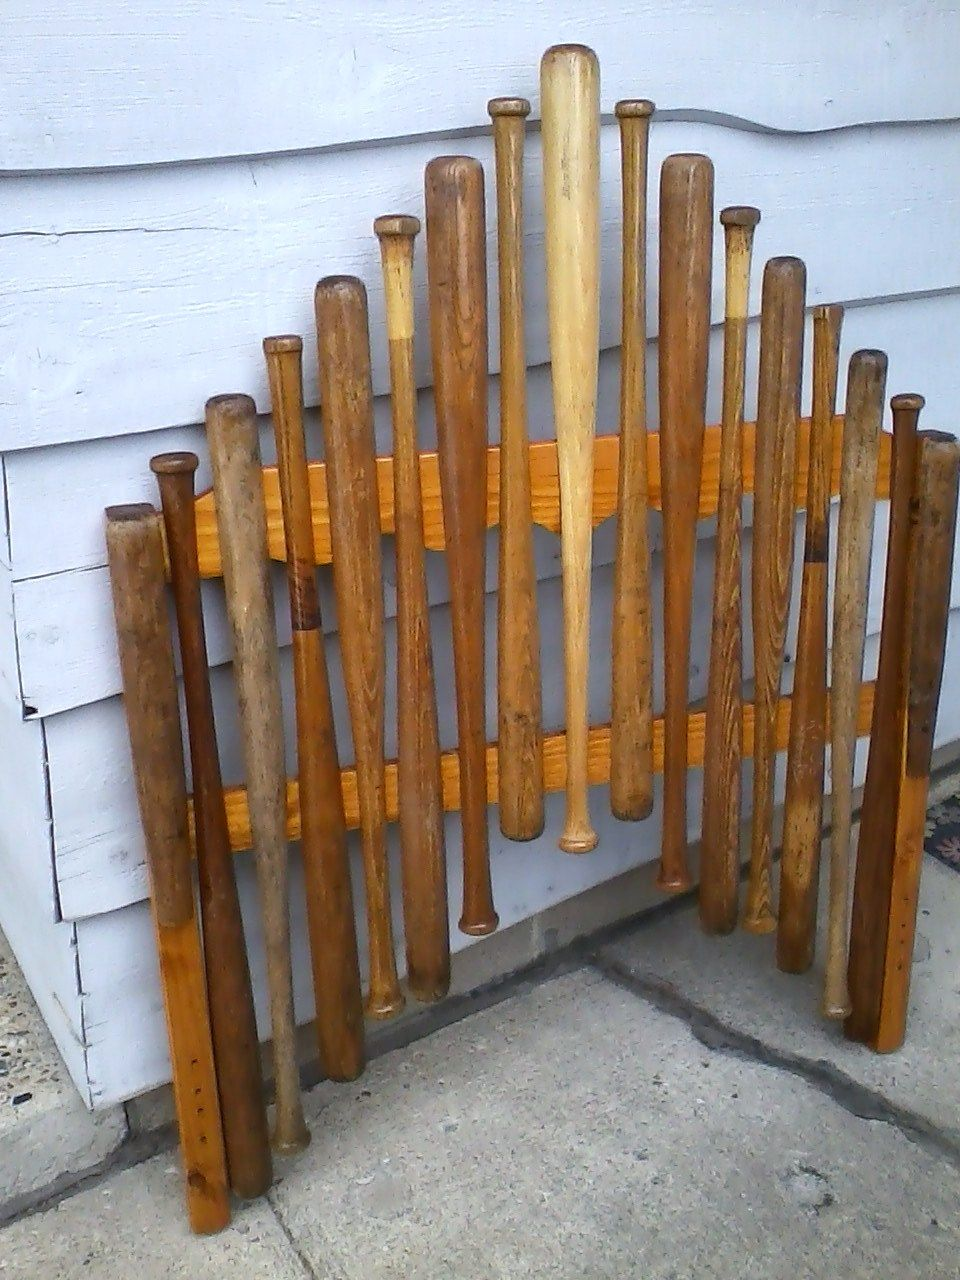 the pinner said i actually sawed these old wooden baseball bats in